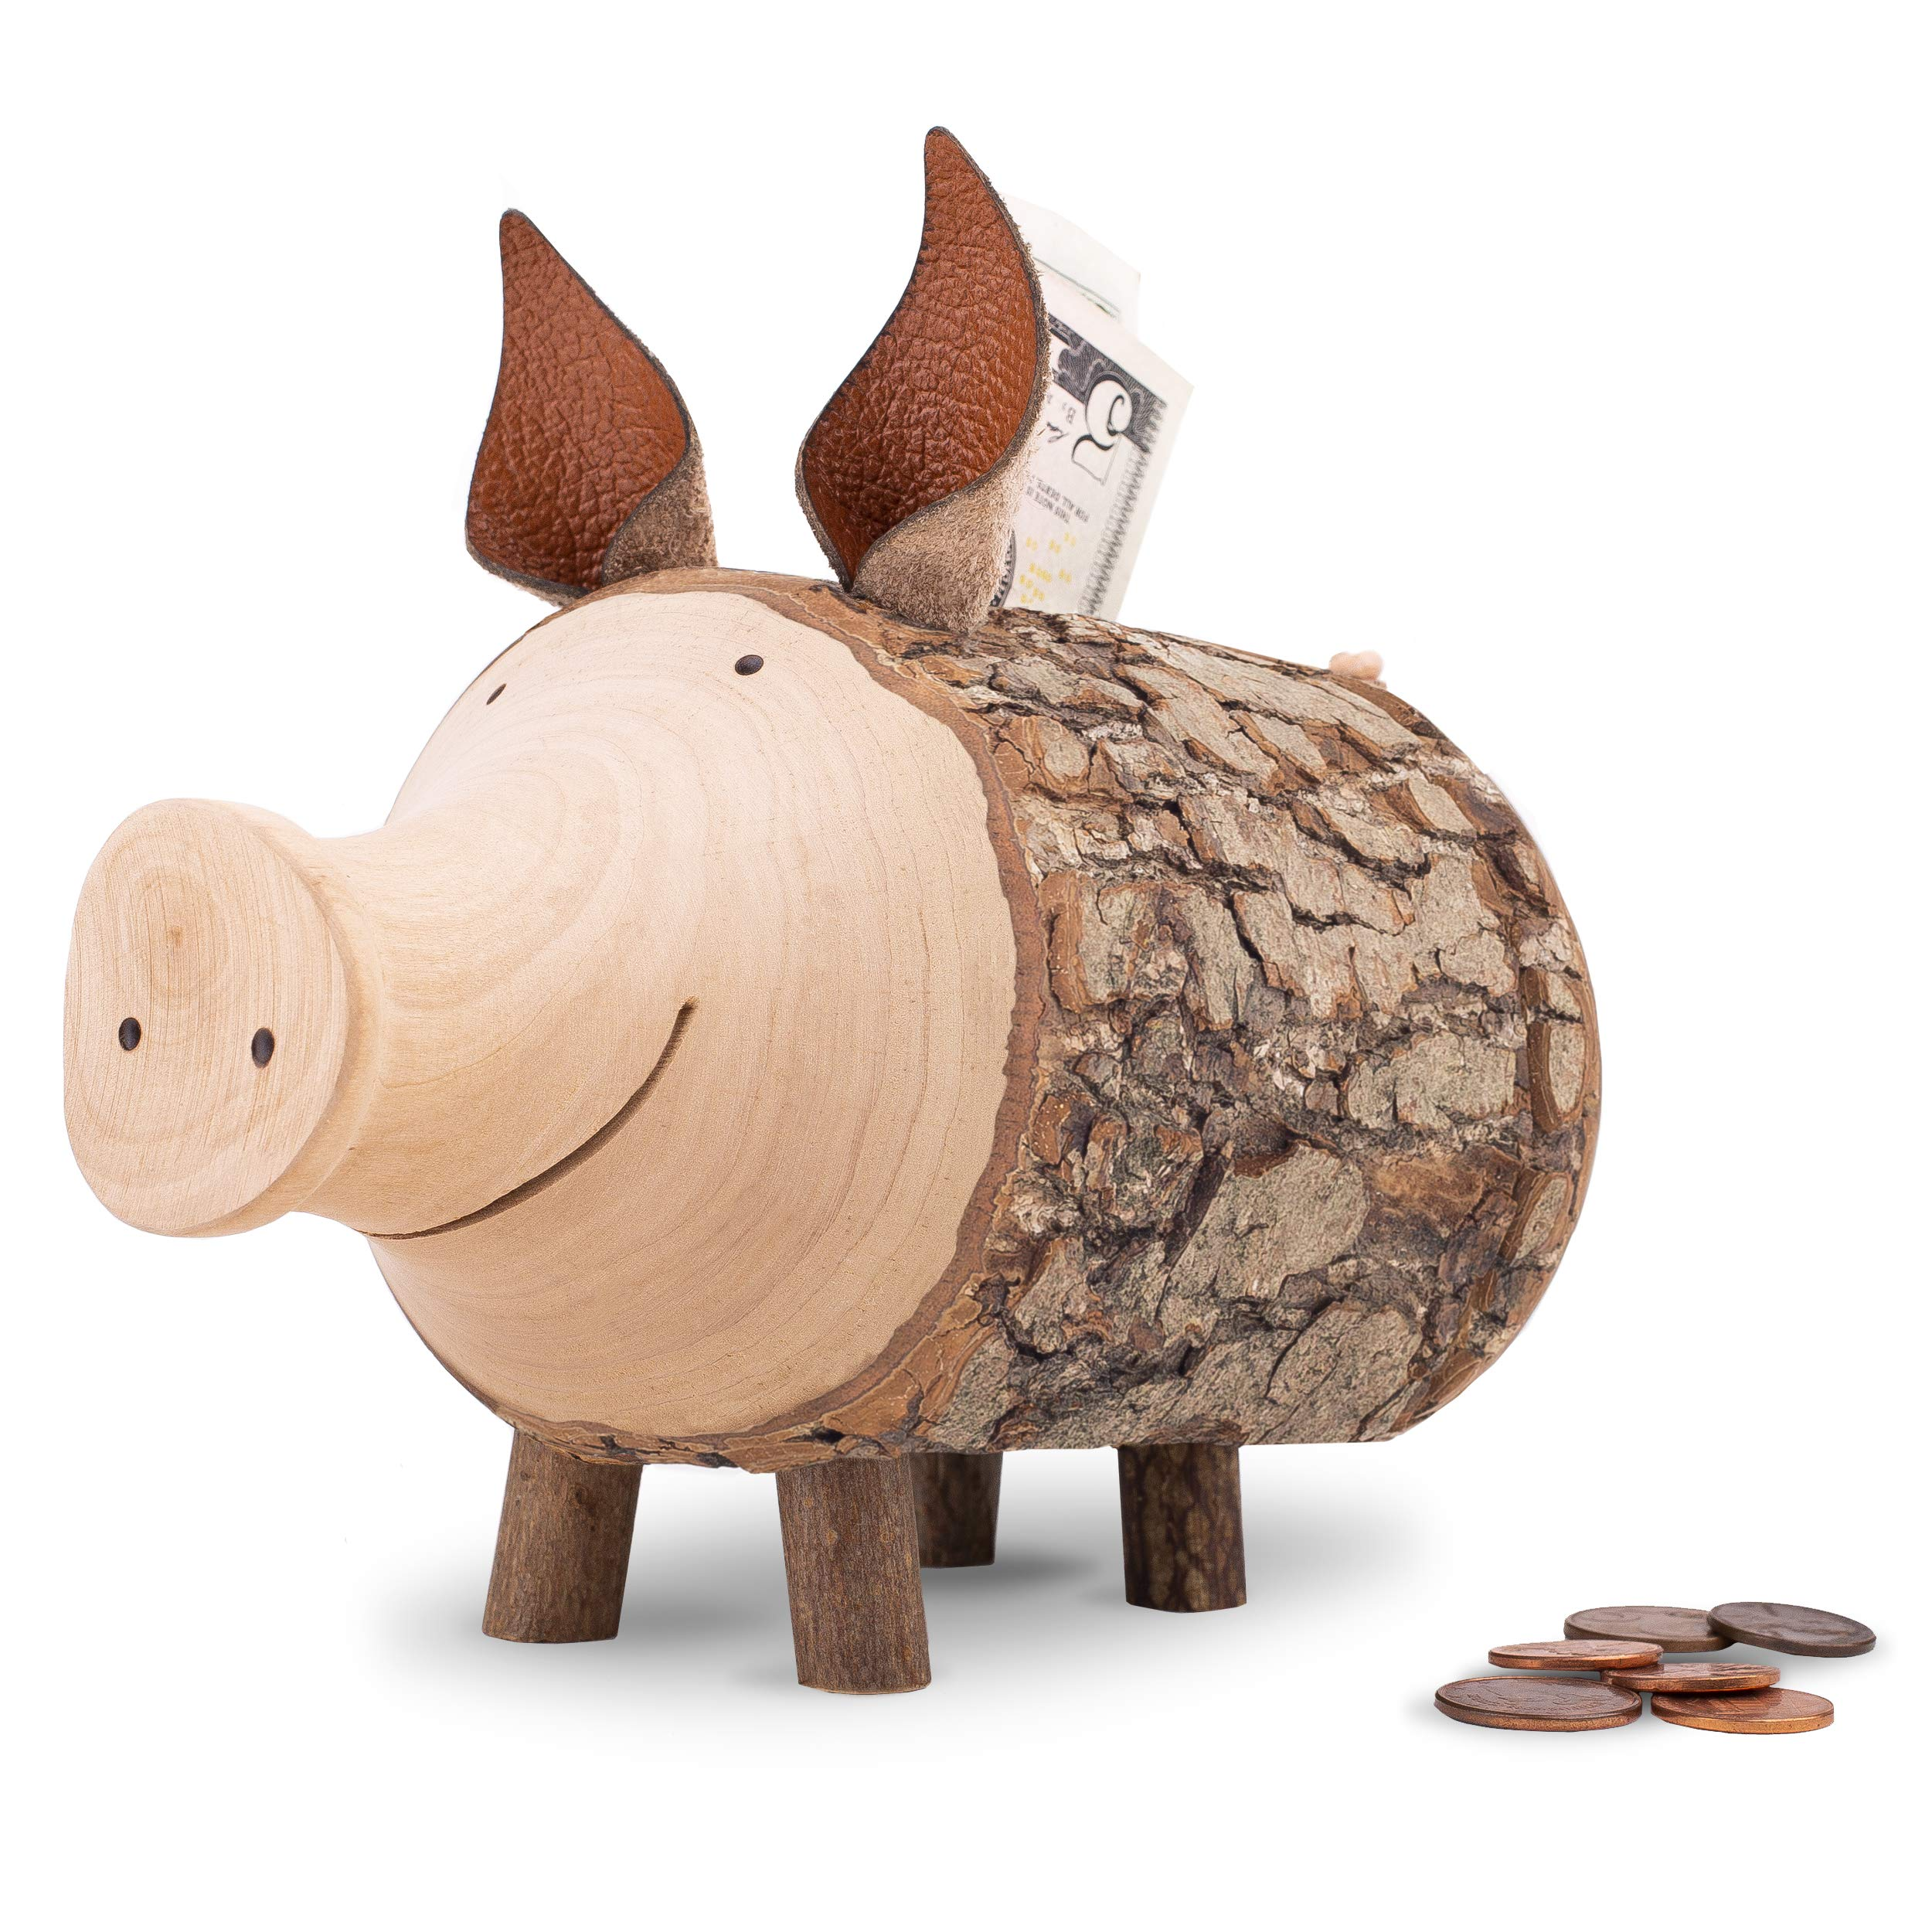 Forest Decor Cute Kid's Piggy Bank for Boys and Girls, Handmade Wood Craftsmanship, Cute Unfinished Bark, Stores Cash and Coins, Made in Germany (Large) by Forest Decor